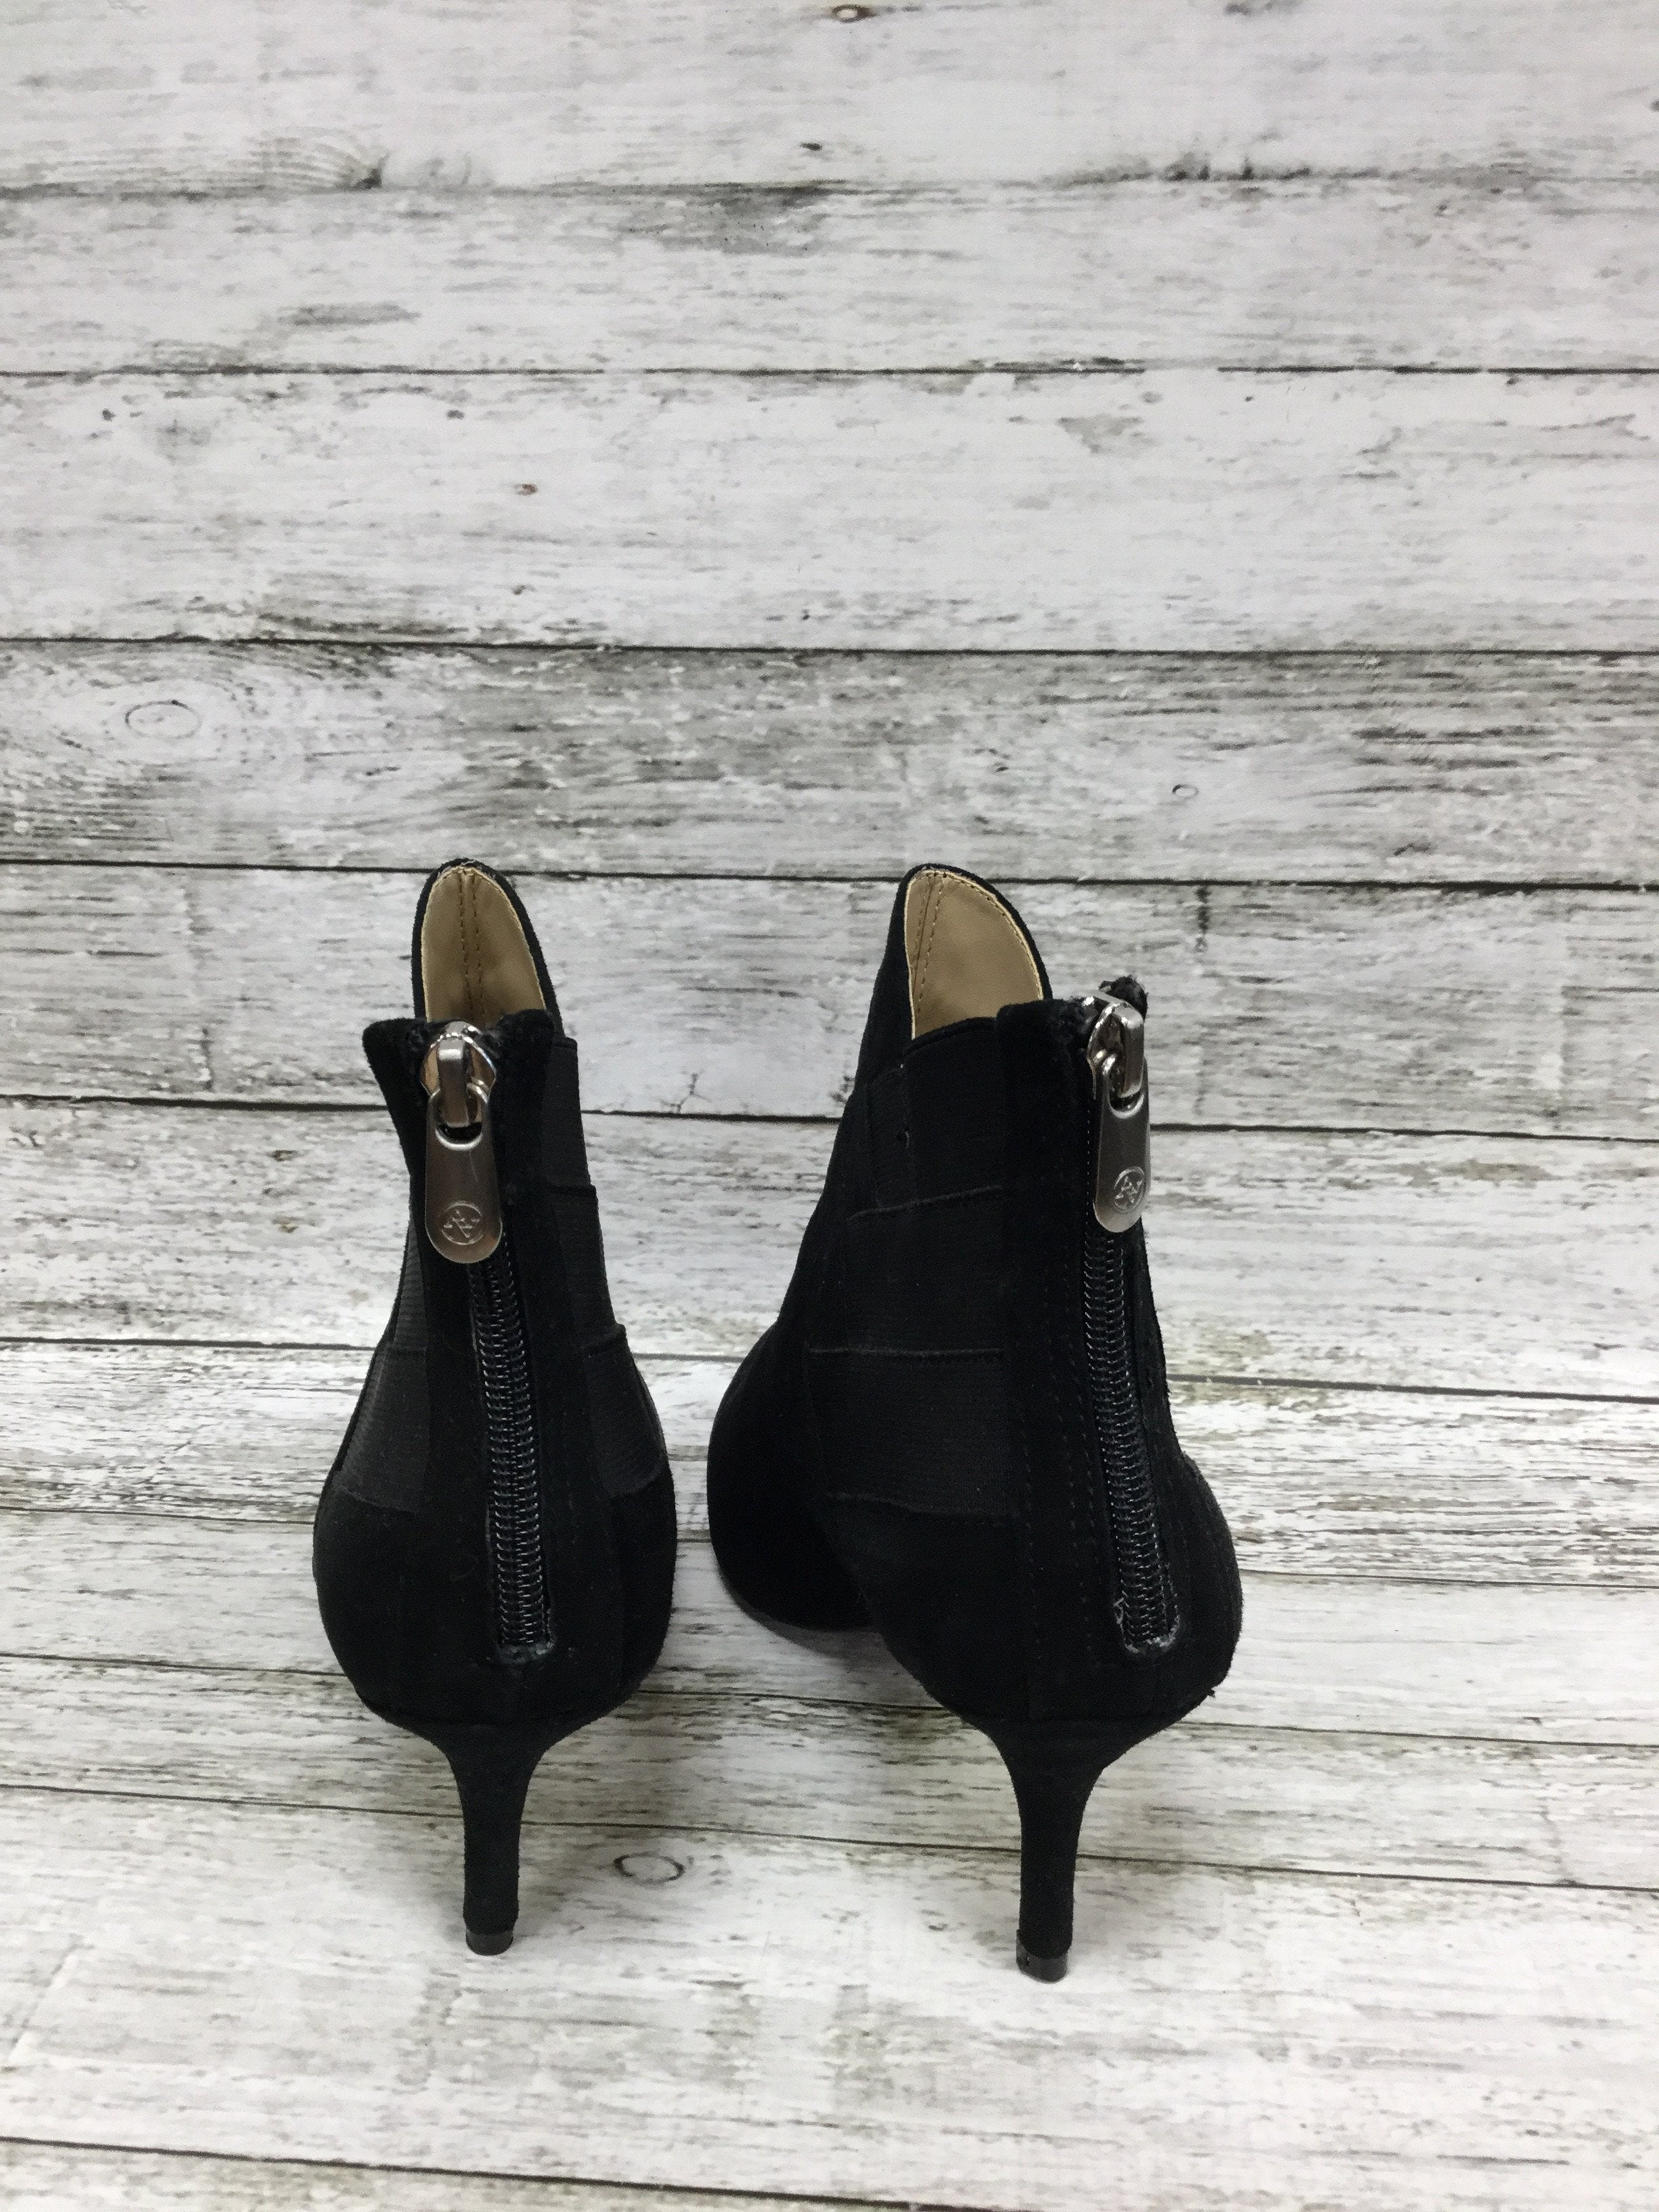 Photo #4 - brand: adrienne vittadini , style: boots ankle , color: black , size: 7.5 , sku: 127-3371-41625, , suede booties with diagonal elastic and suede detail!